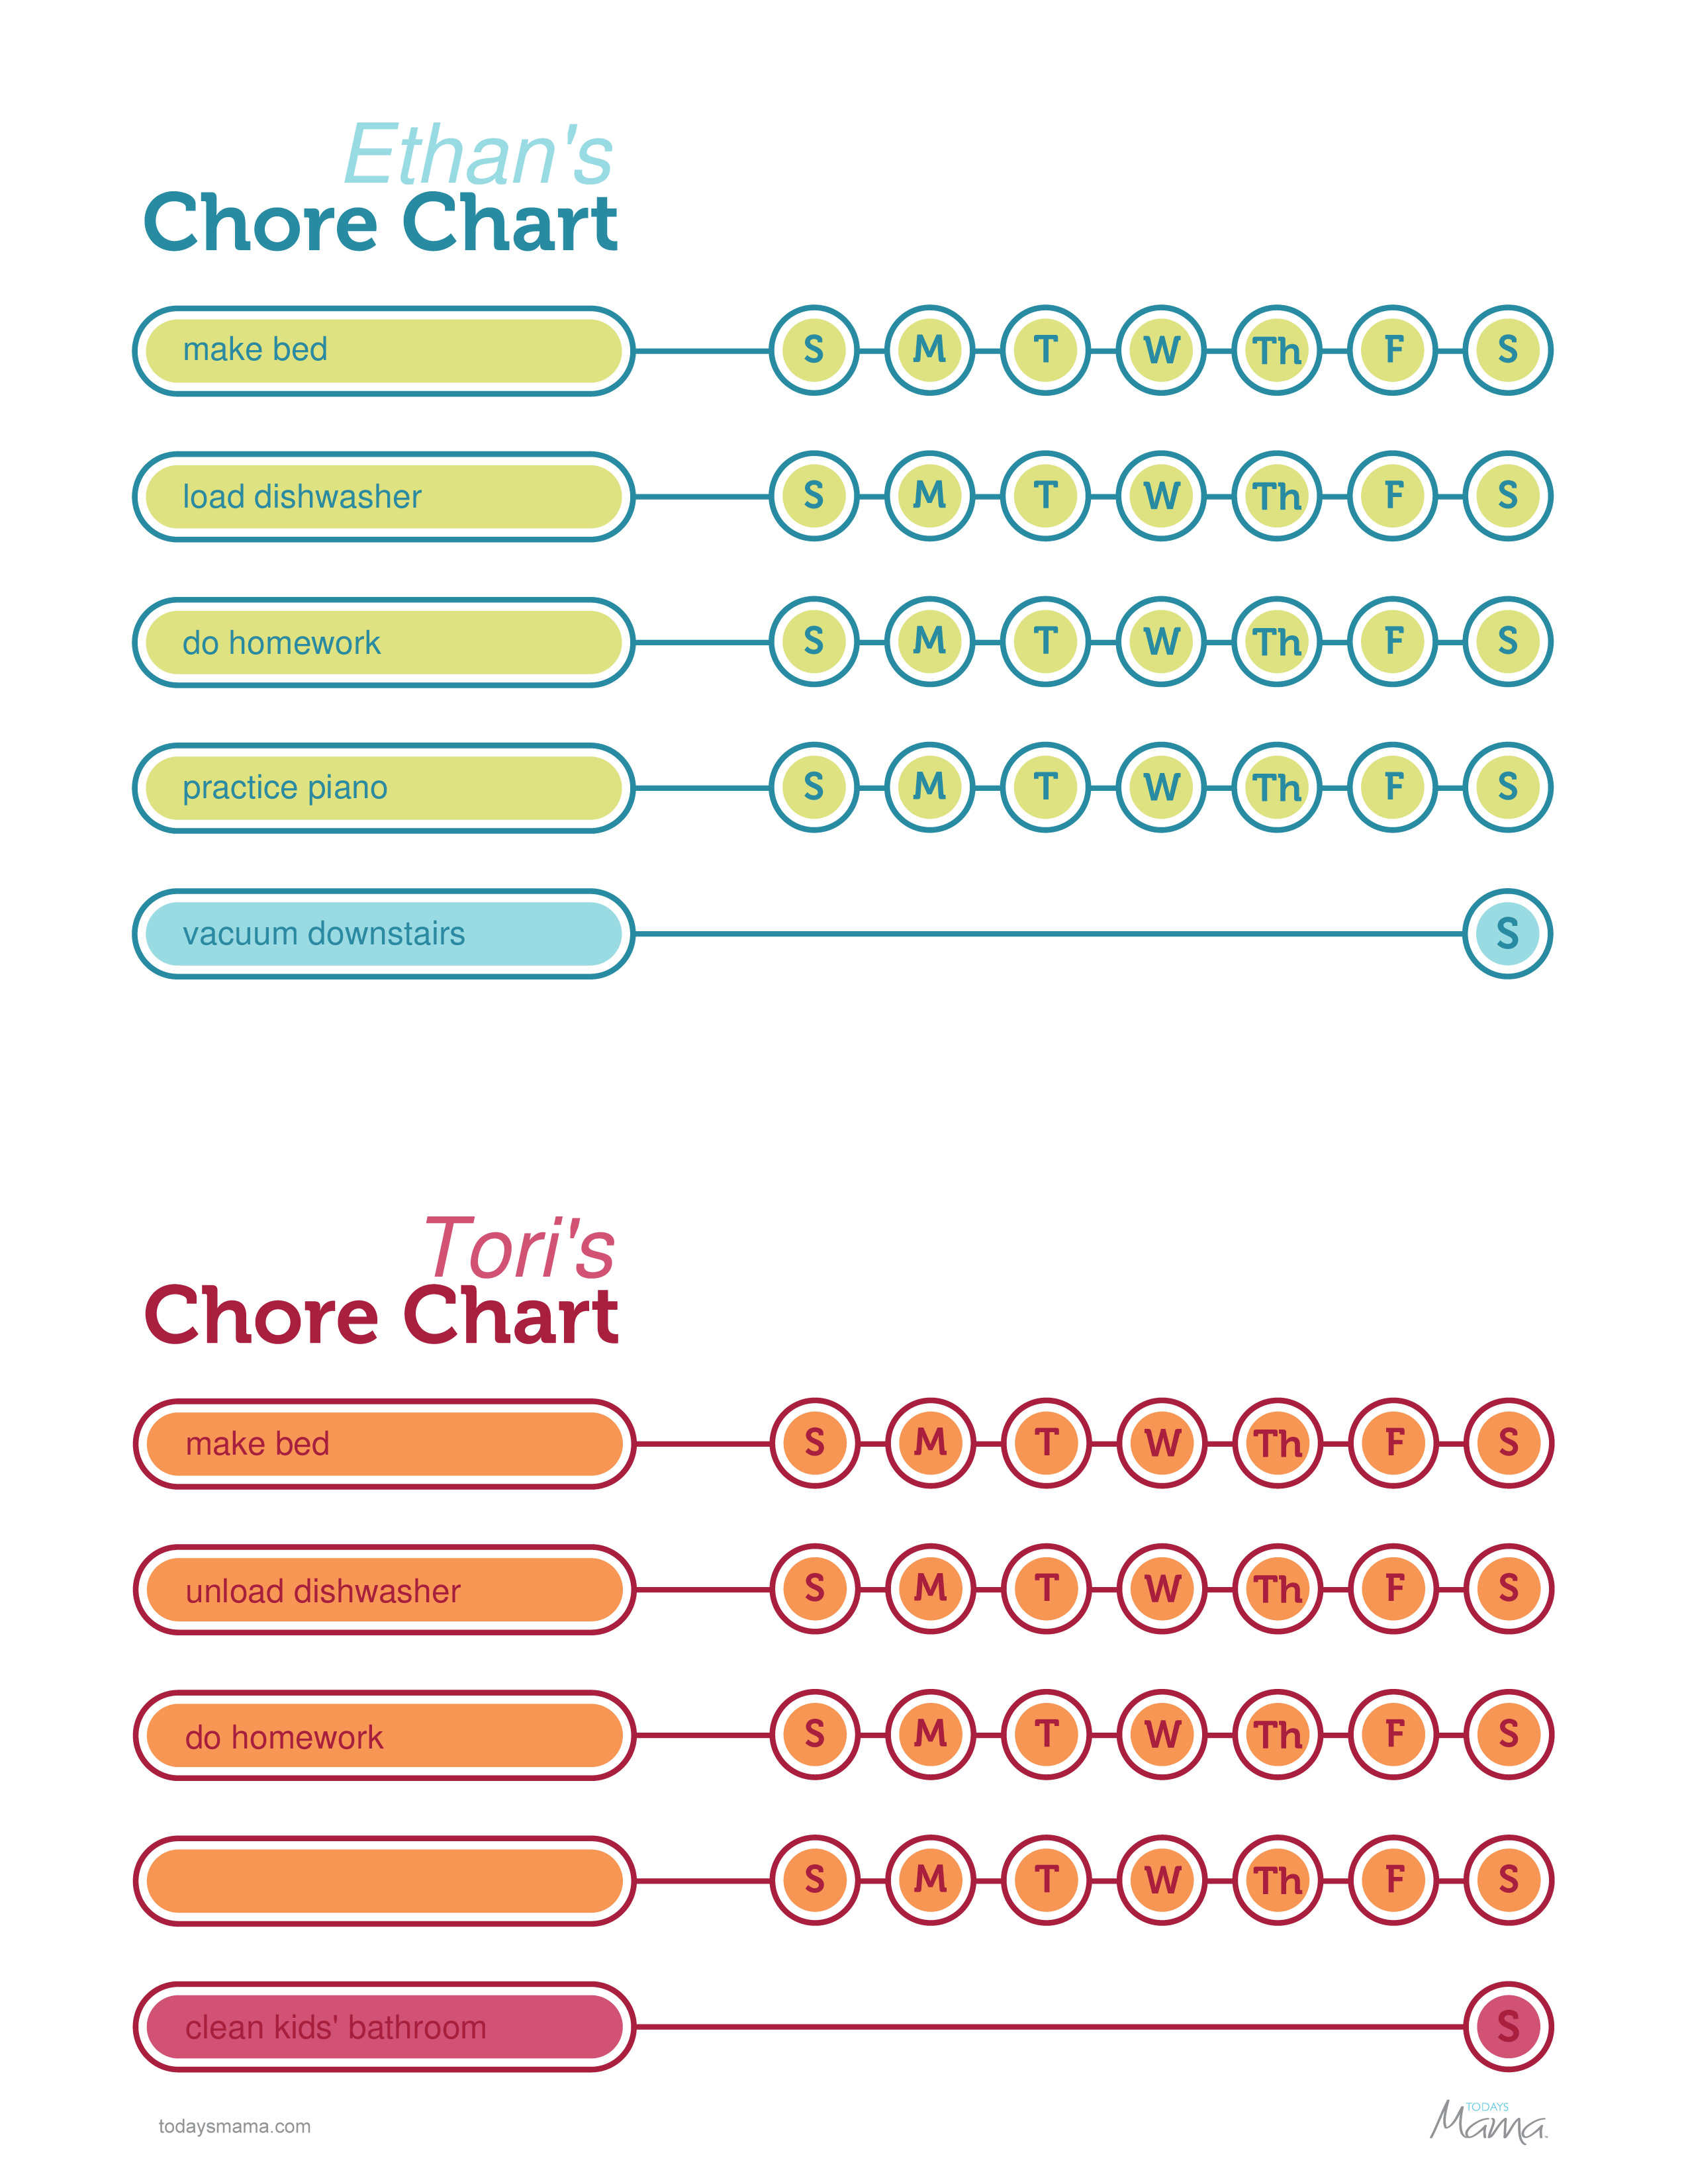 Free Printable Chore Chart For Kids Templates At